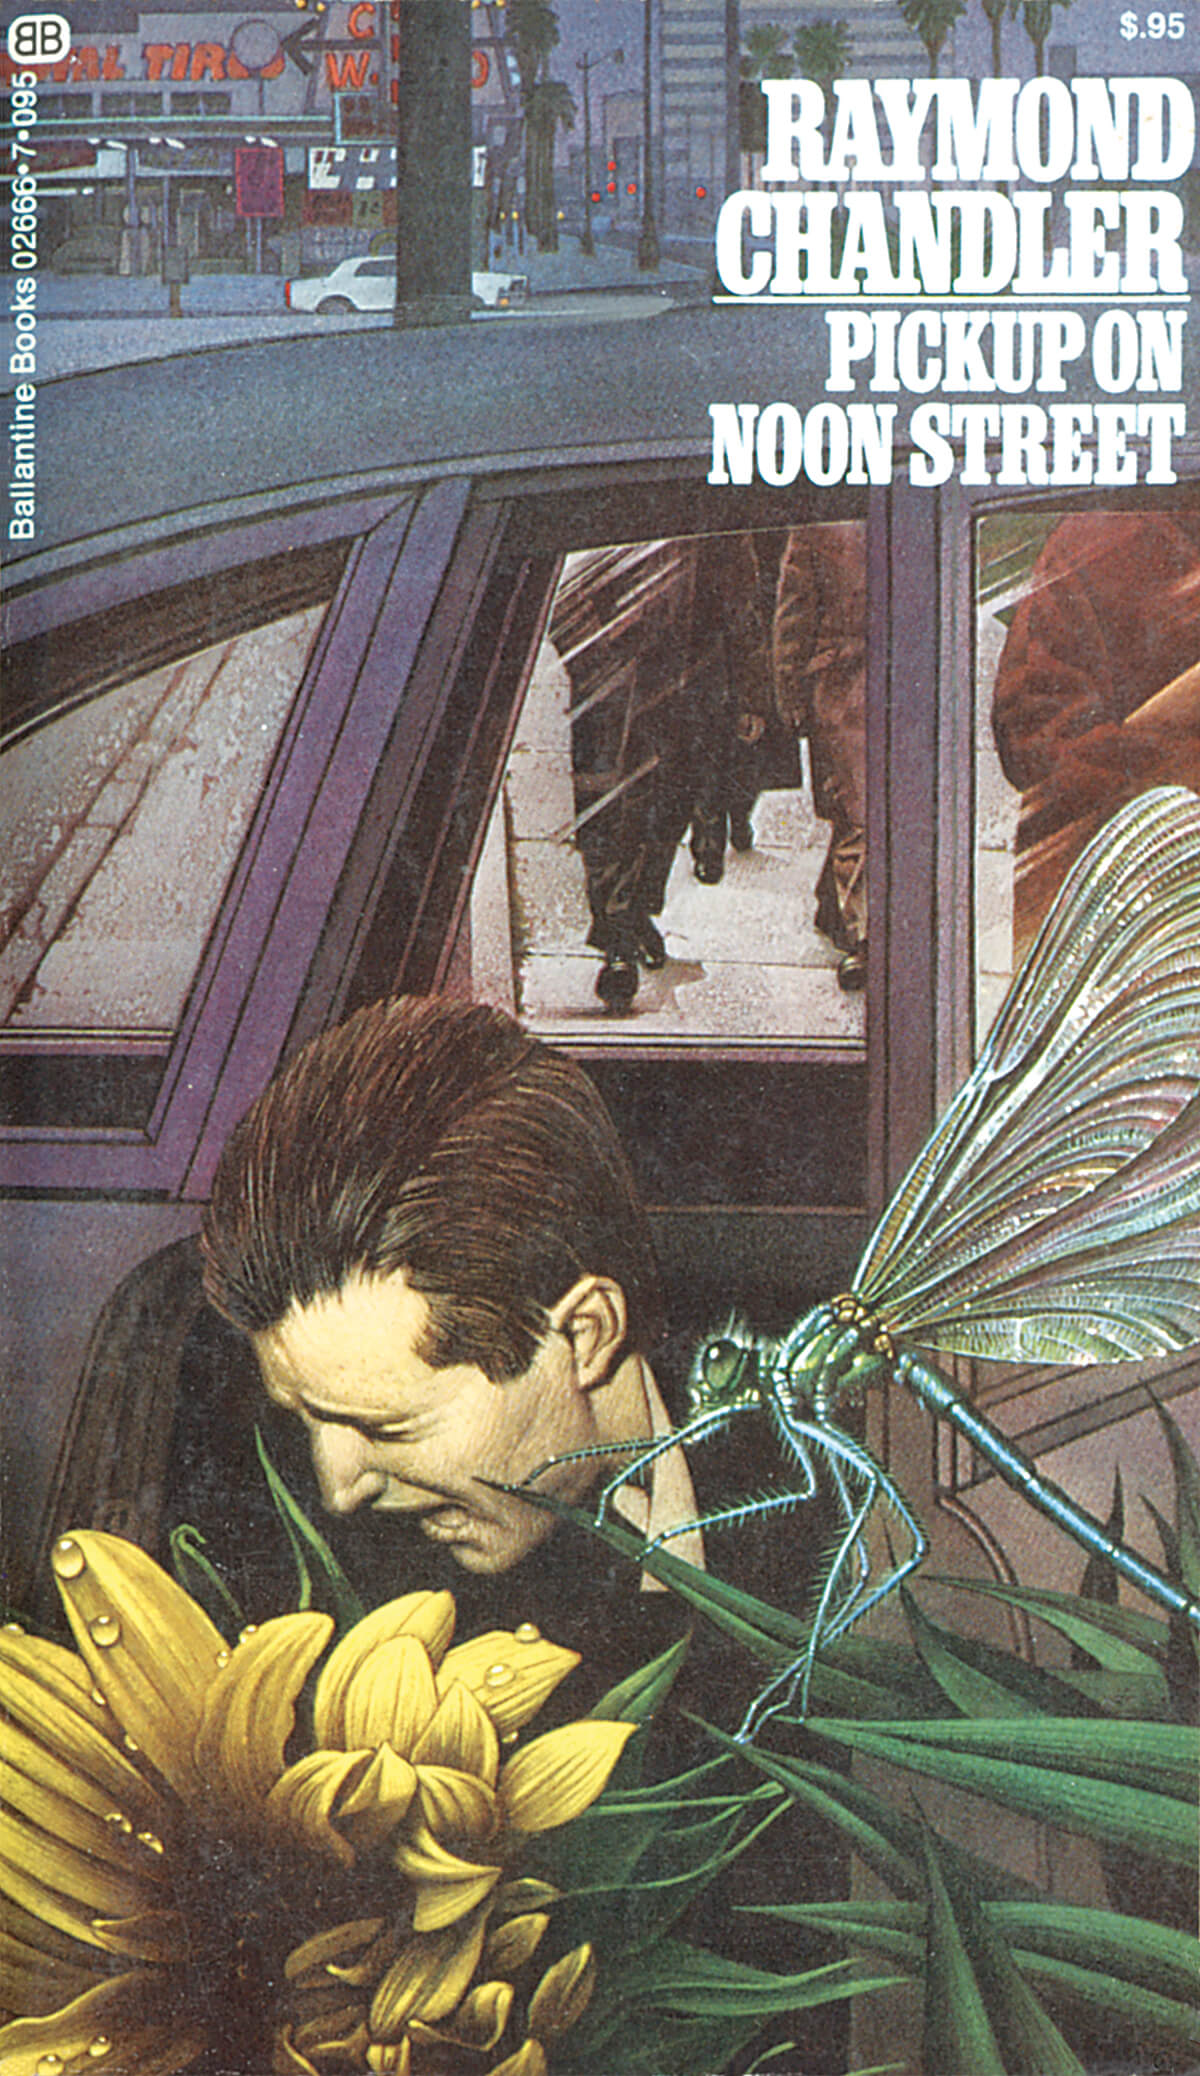 Pickup on Noon Street by Raymond Chandler, Cover by Tom Adams